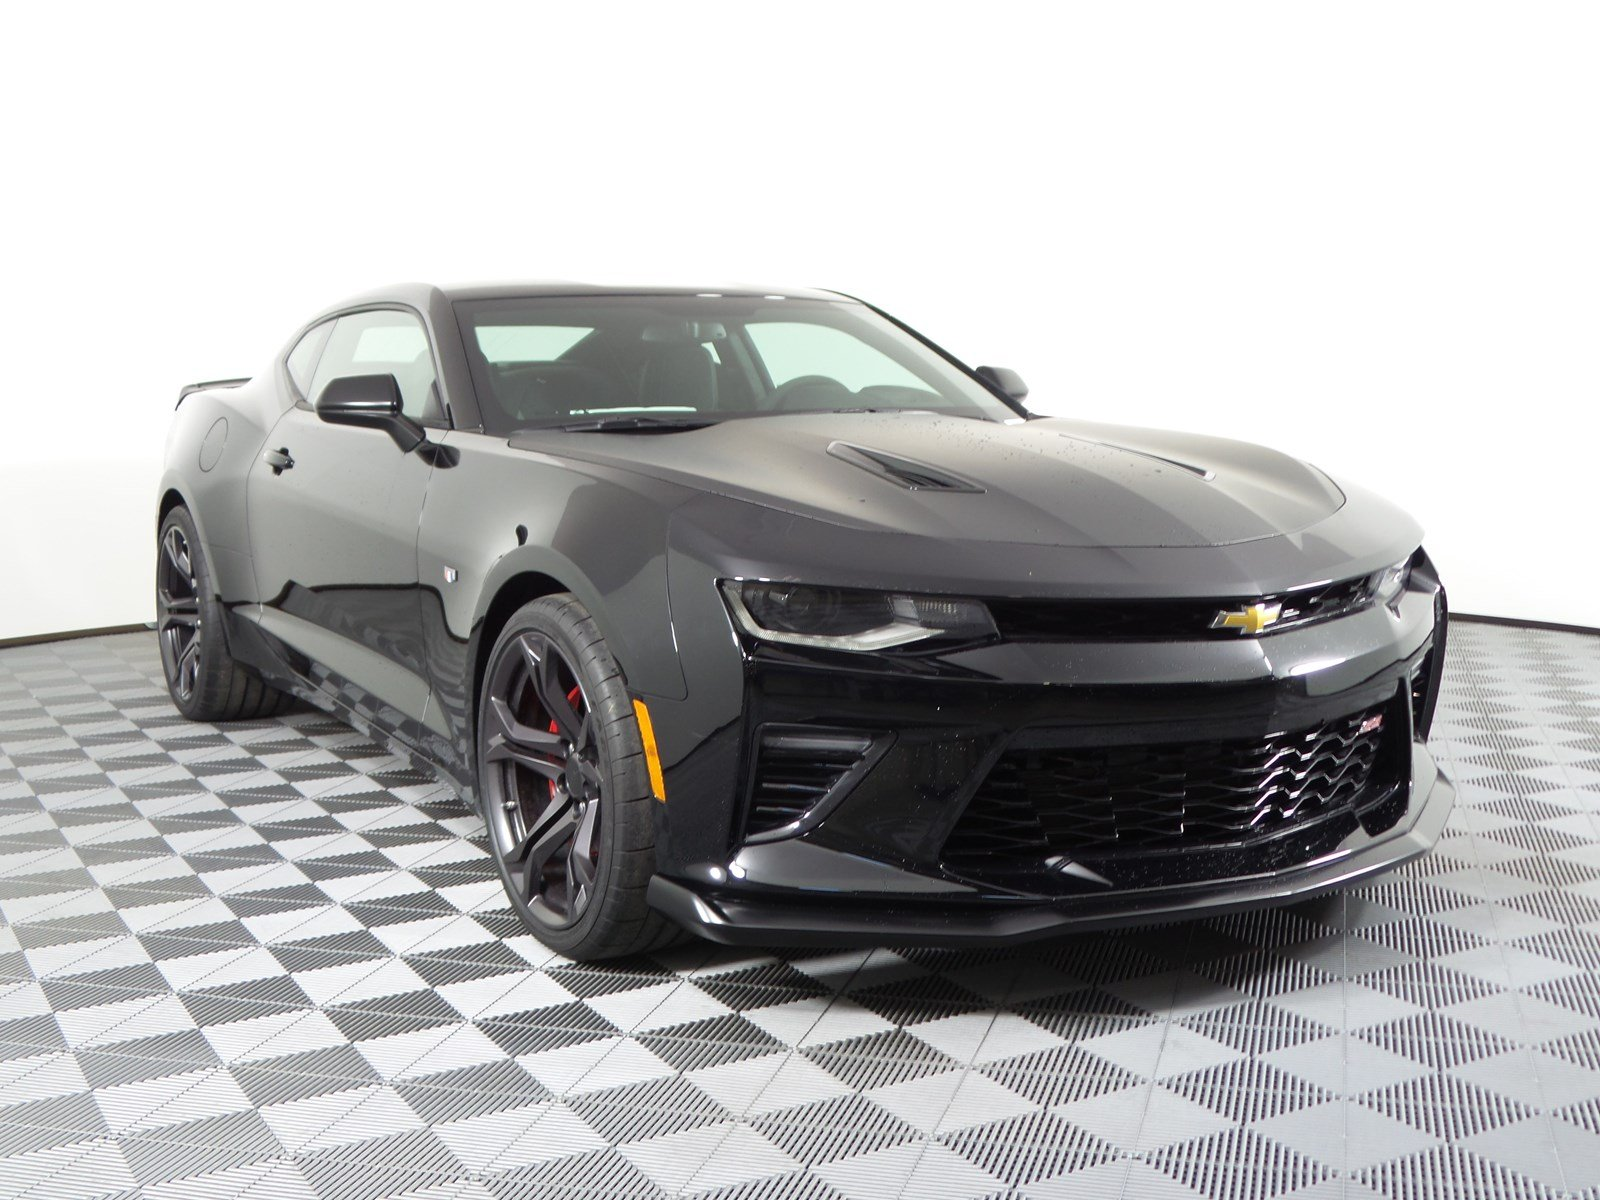 new 2018 chevrolet camaro ss in nampa d180483 kendall at the idaho center auto mall. Black Bedroom Furniture Sets. Home Design Ideas